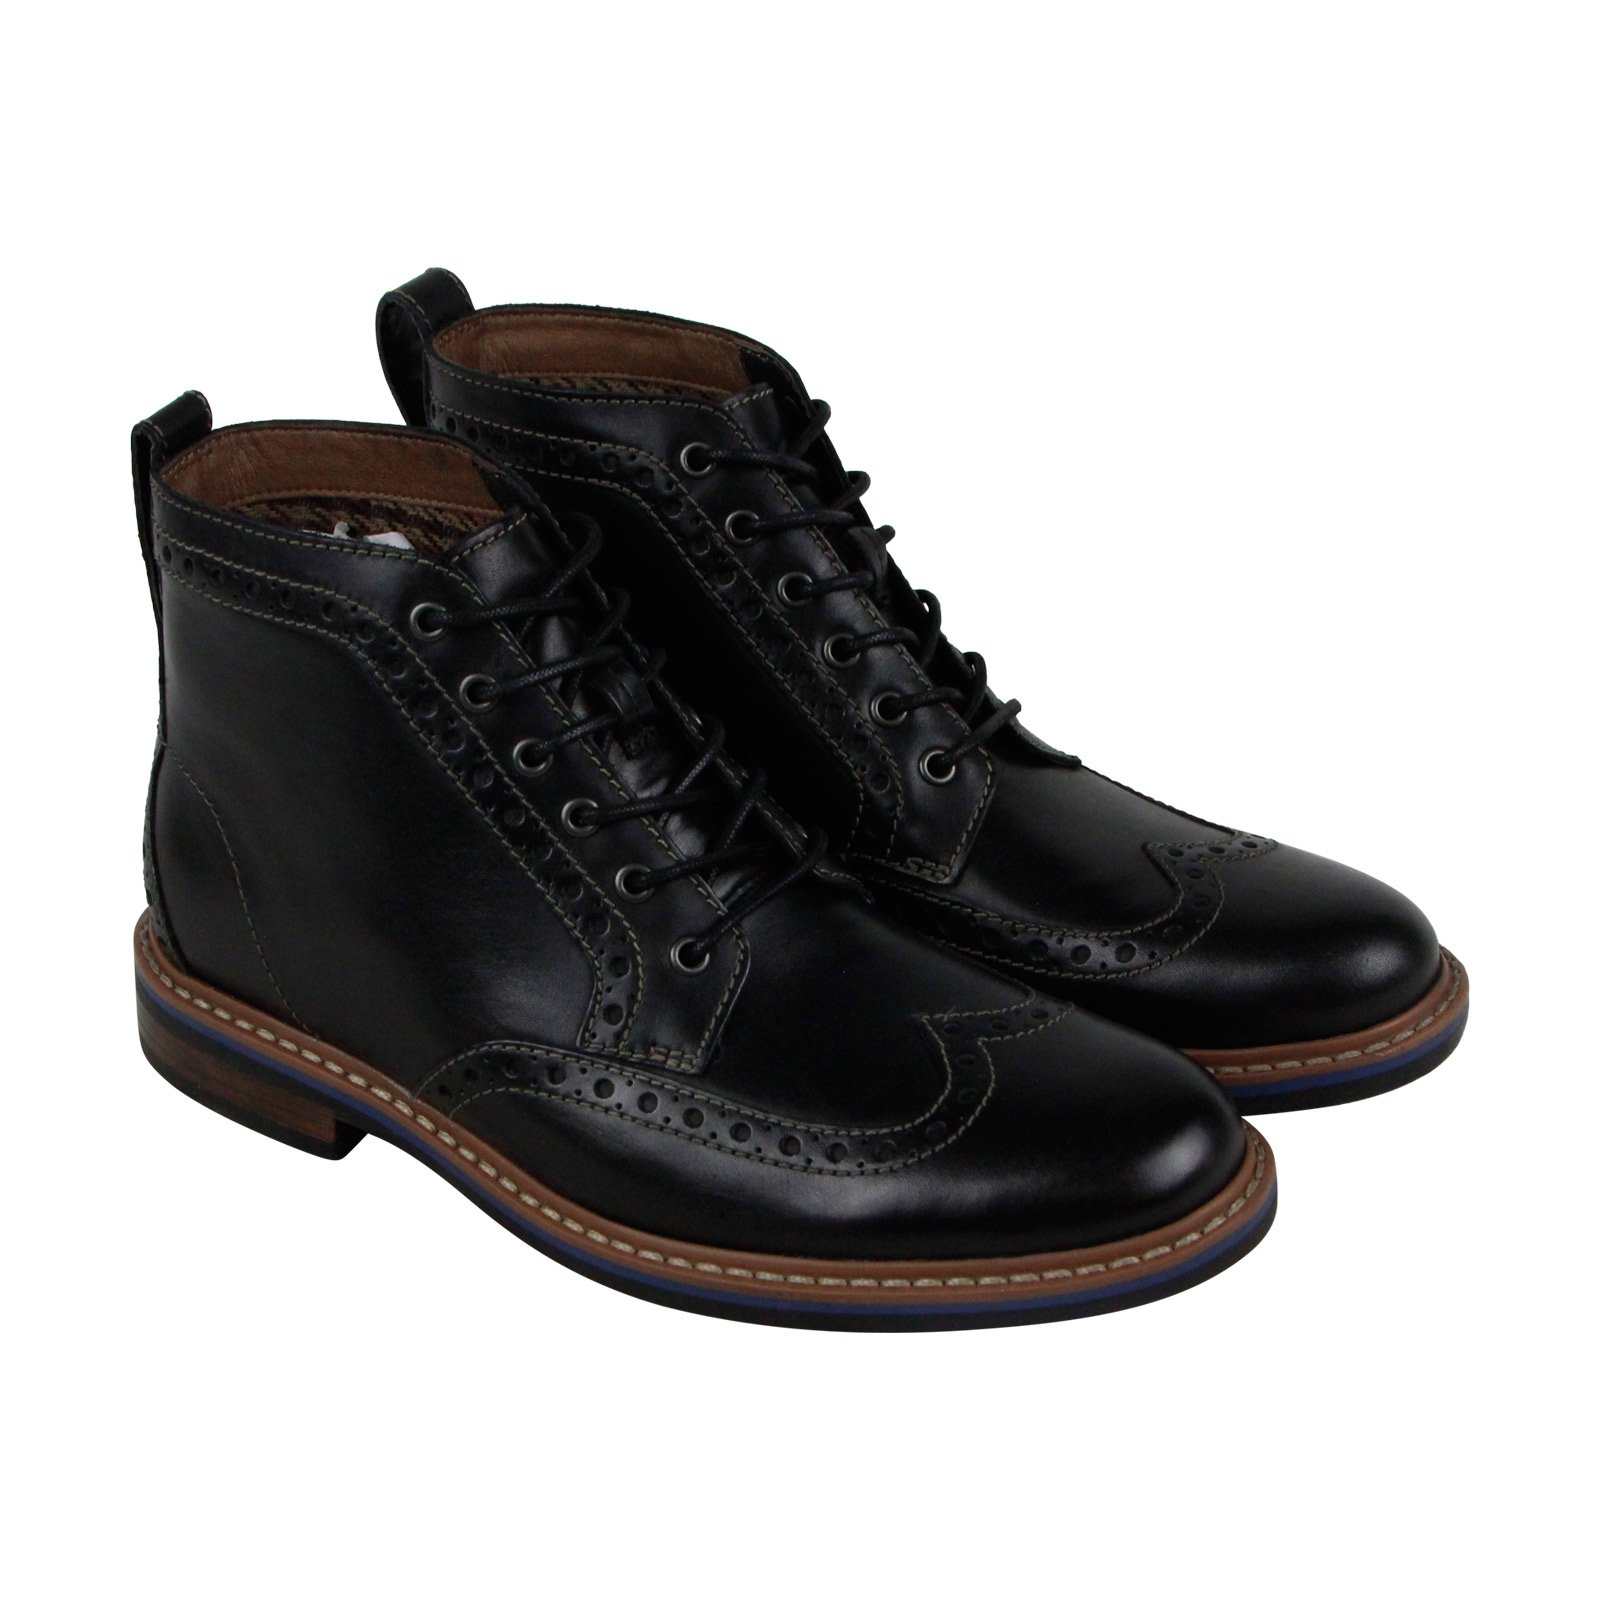 Bostonian Melshire Rise Mens Black Leather Casual Dress Boots Shoes 7.5